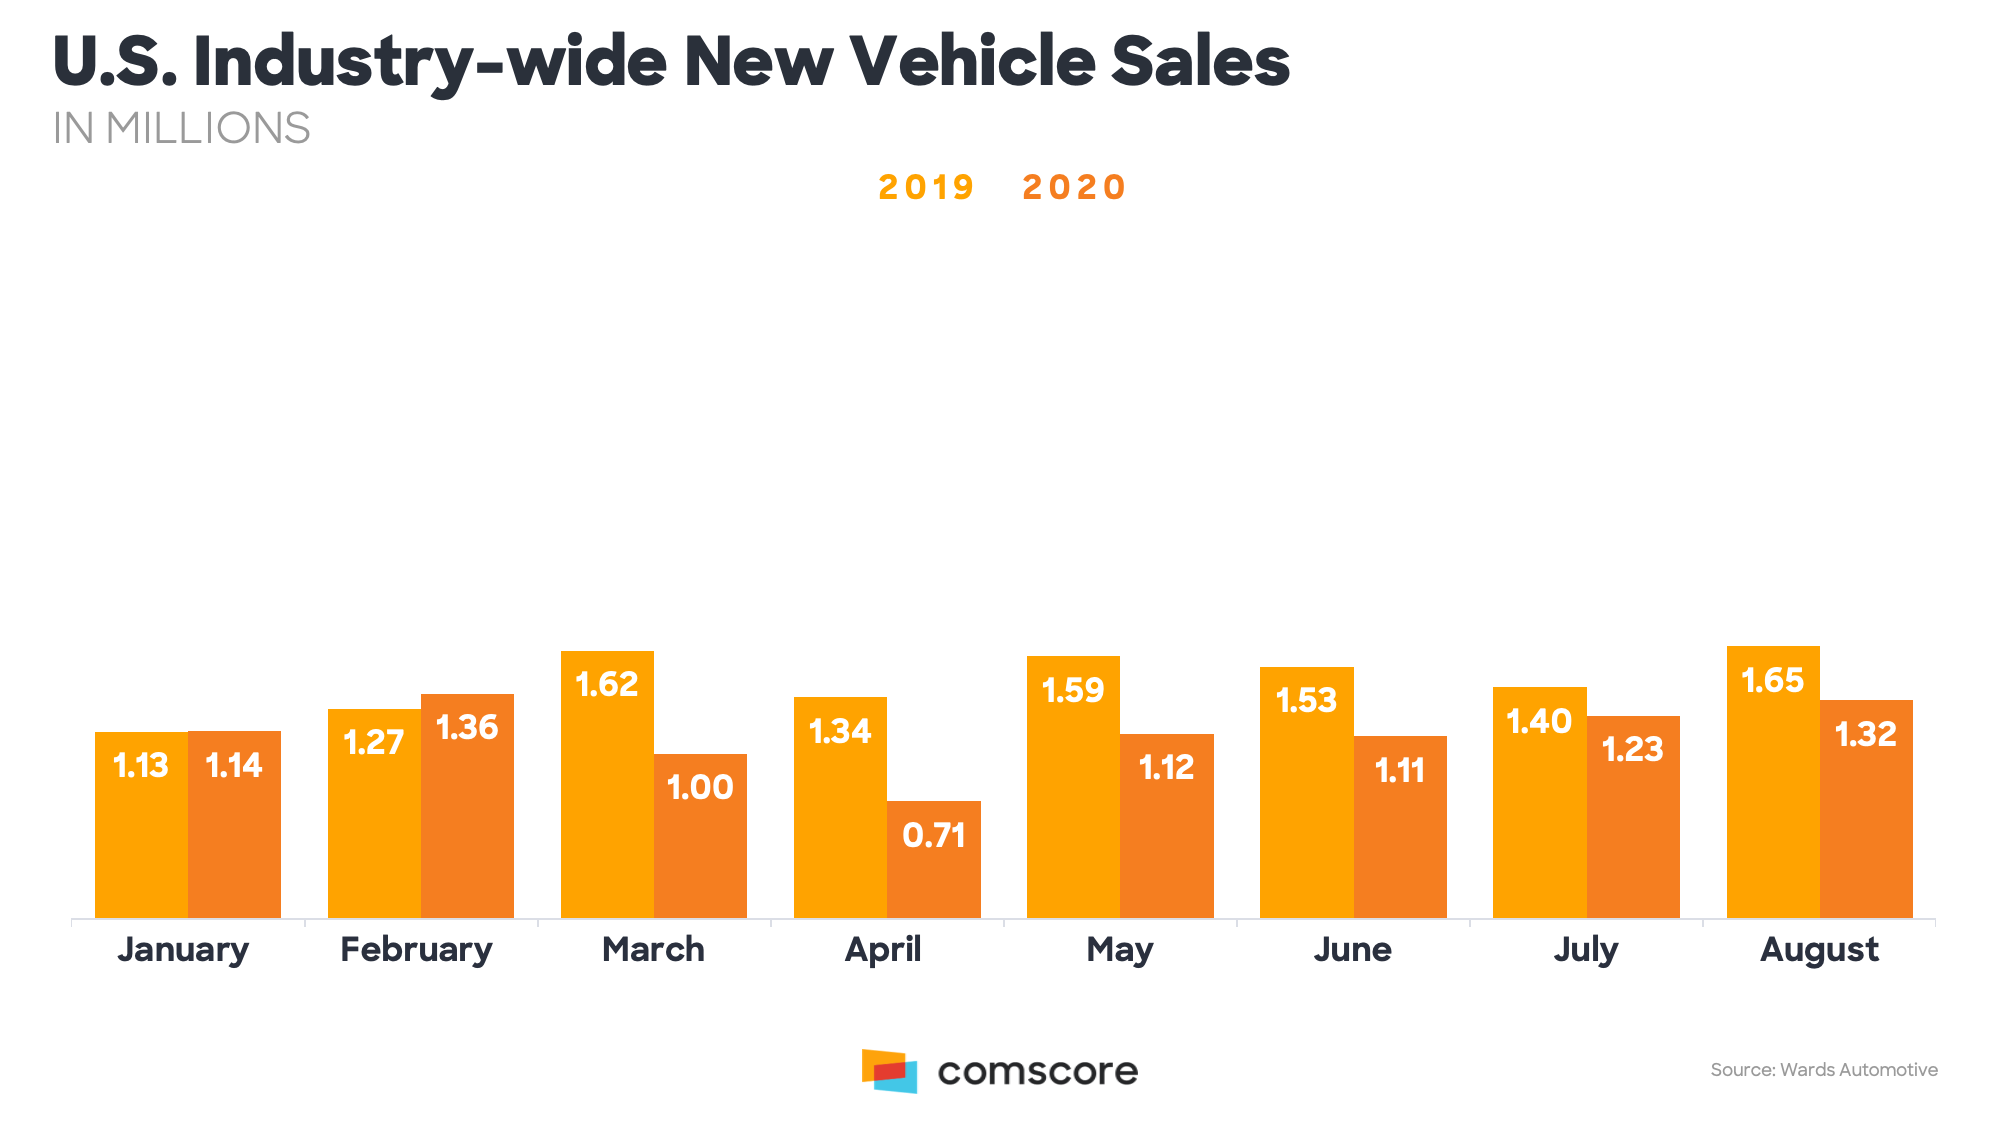 U.S. Industry-wide new vehicle sales